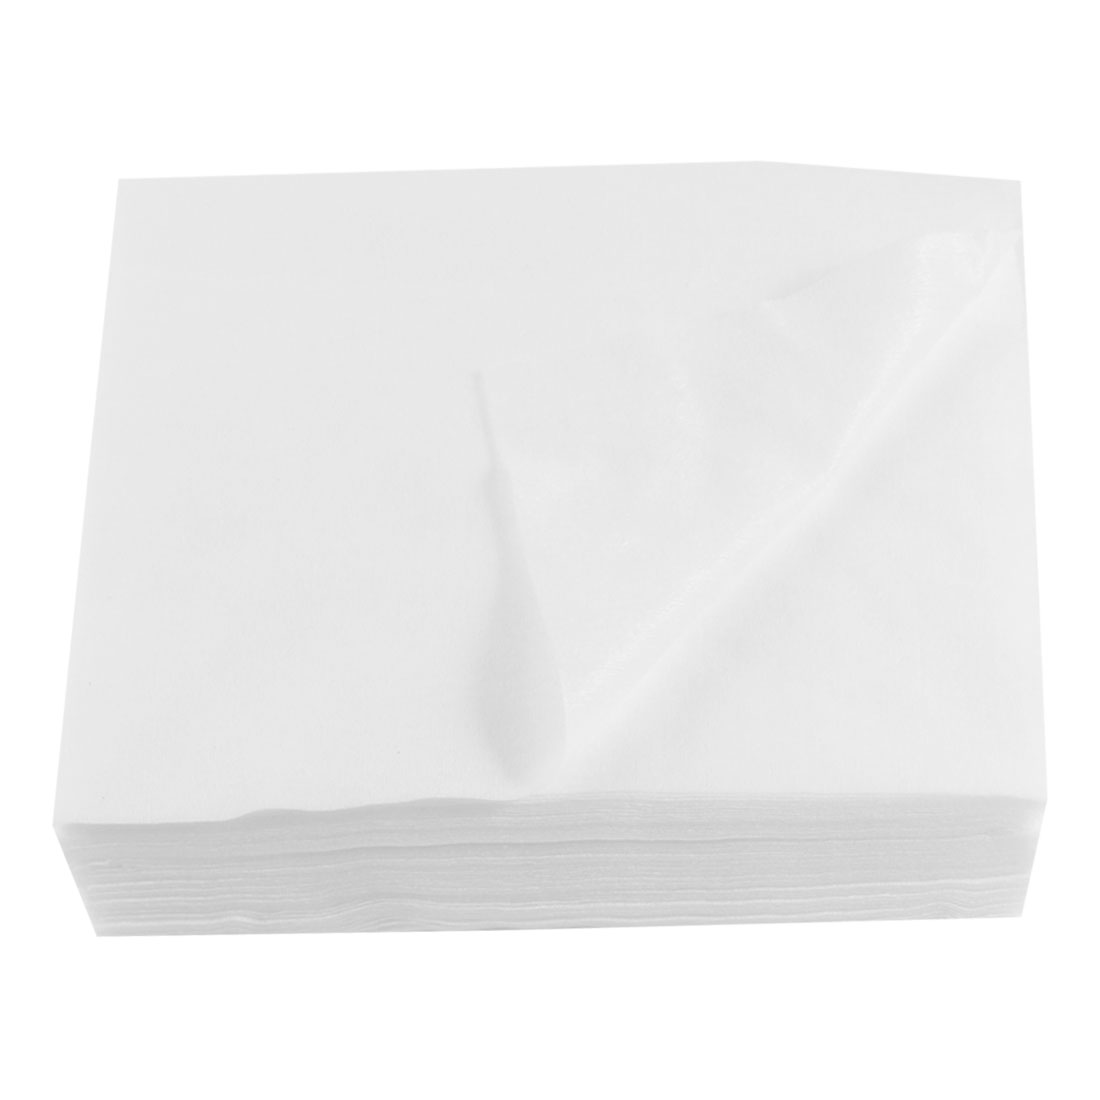 Salon Beauty White Diaposable Face Wash Towels 60 in 1